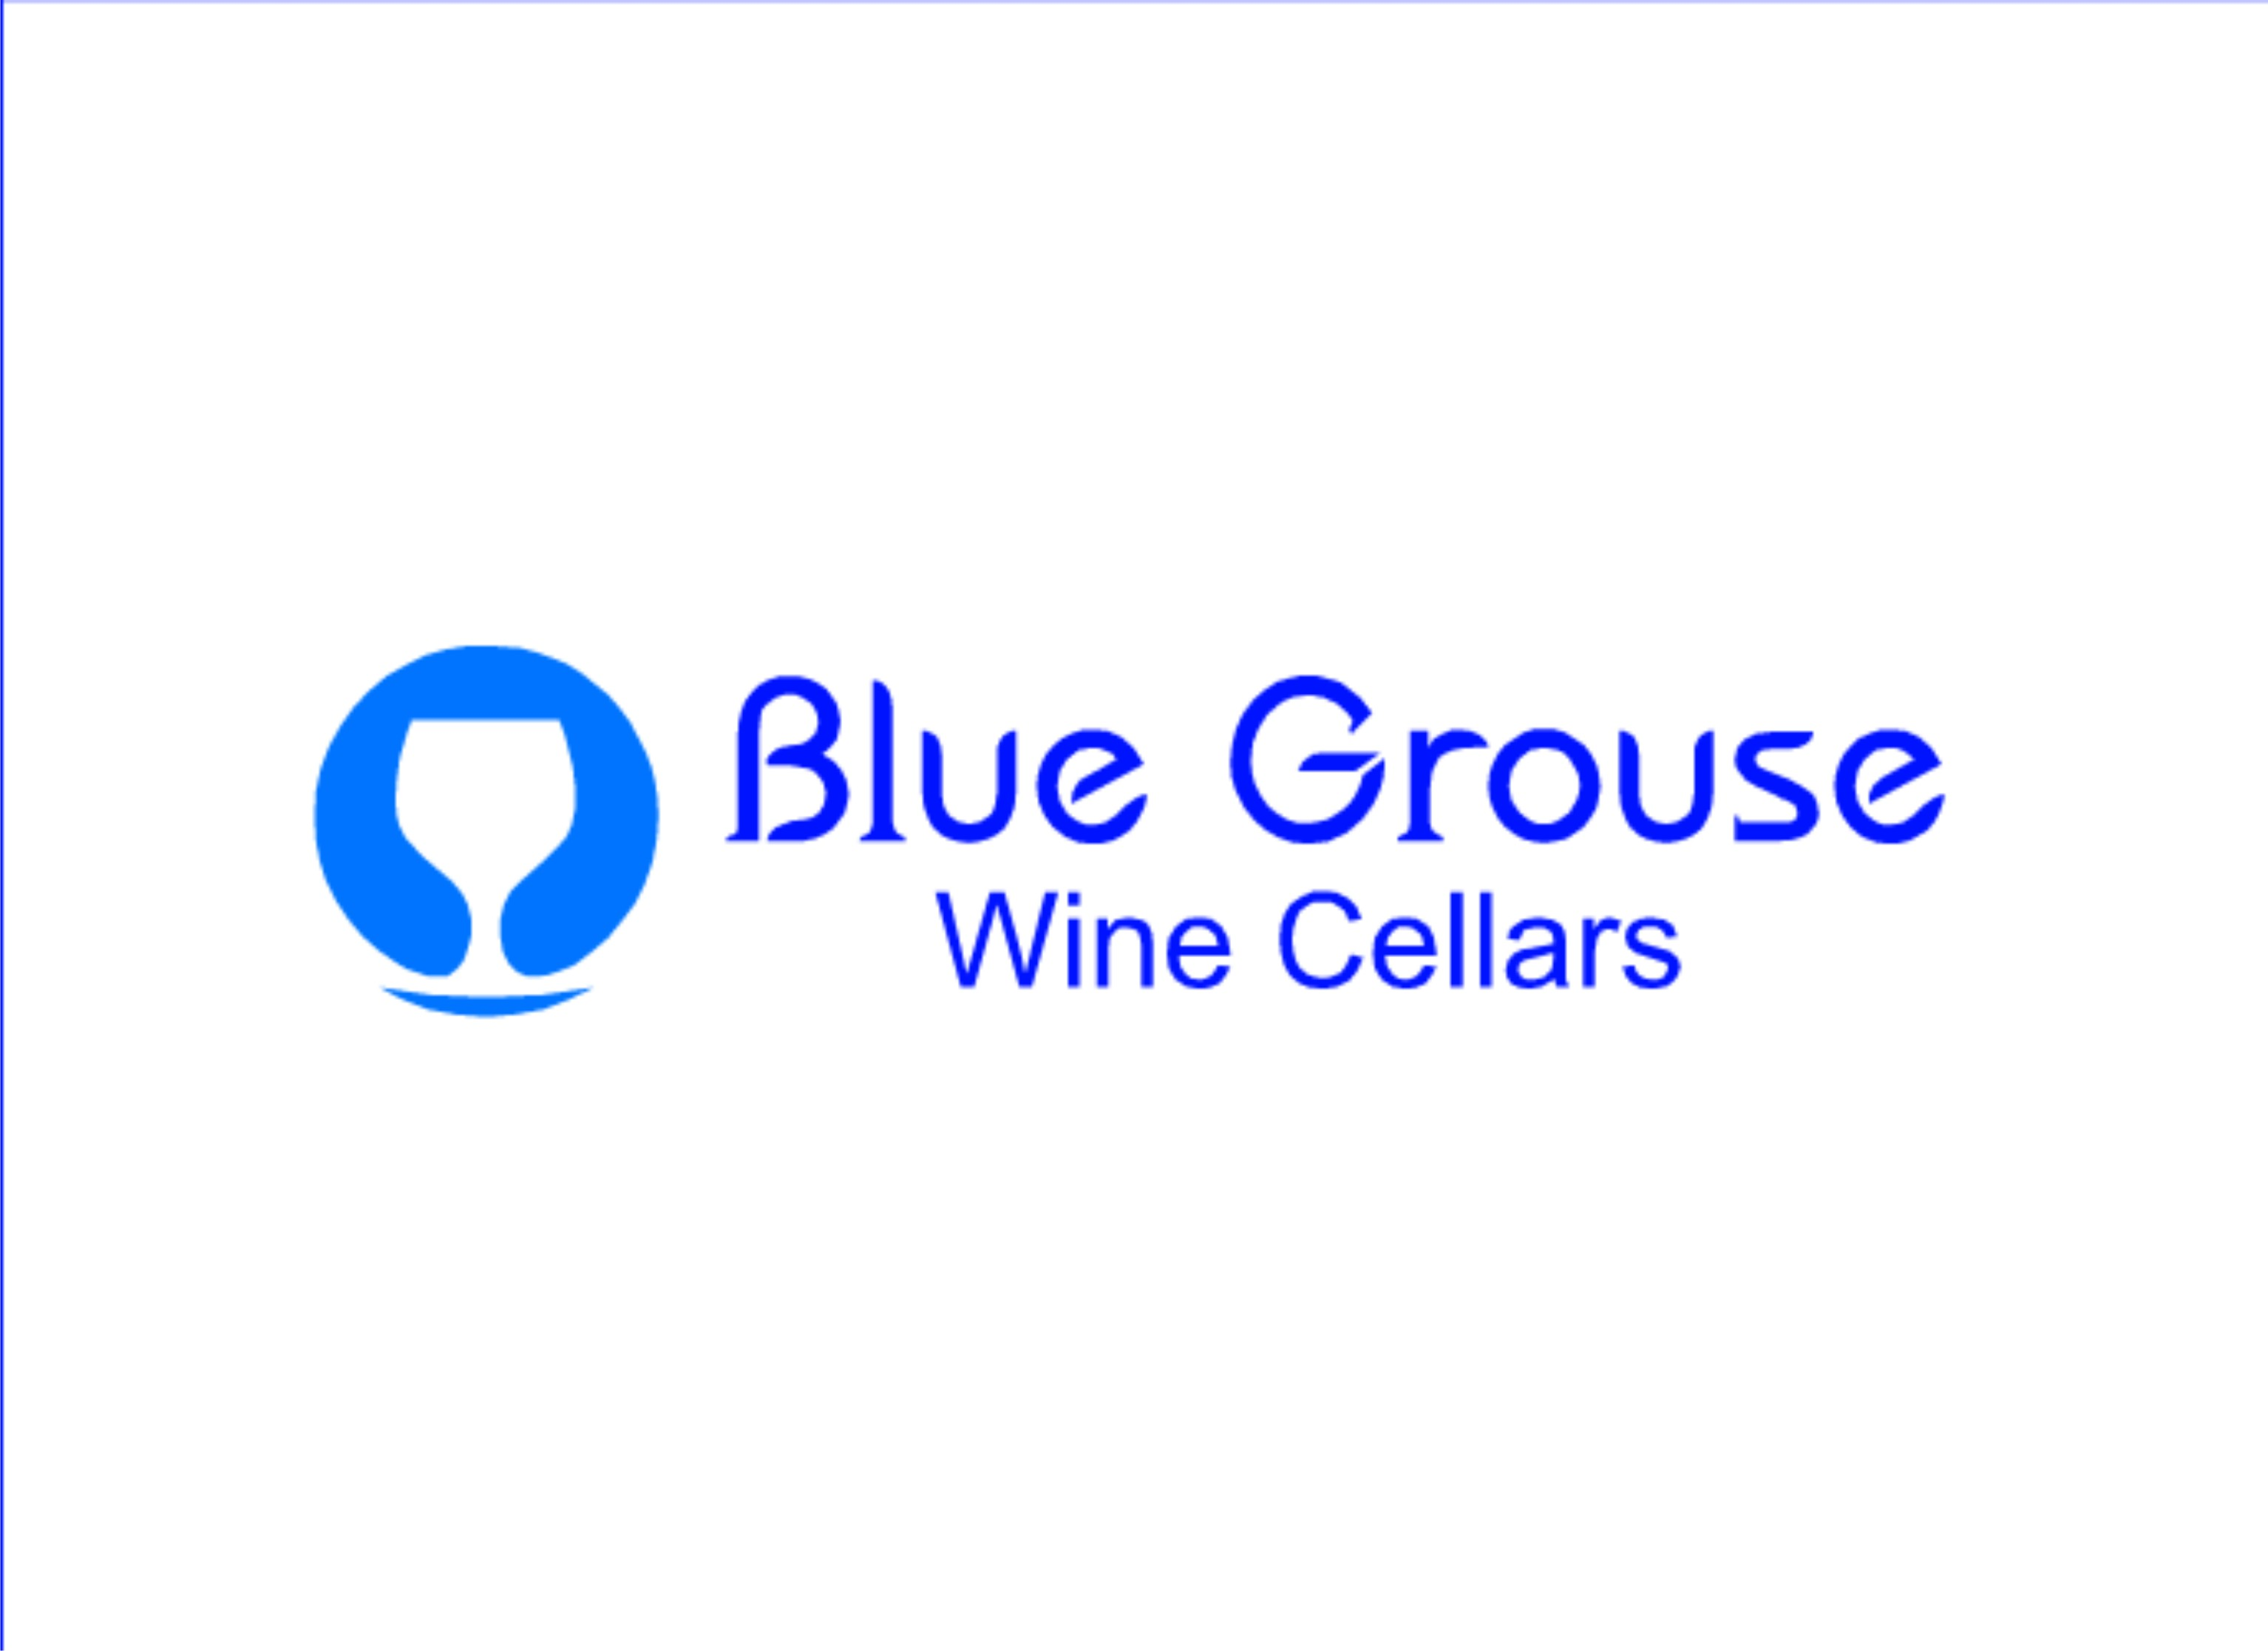 Logo Design by Shailender Kumar - Entry No. 137 in the Logo Design Contest Creative Logo Design for Blue Grouse Wine Cellars.